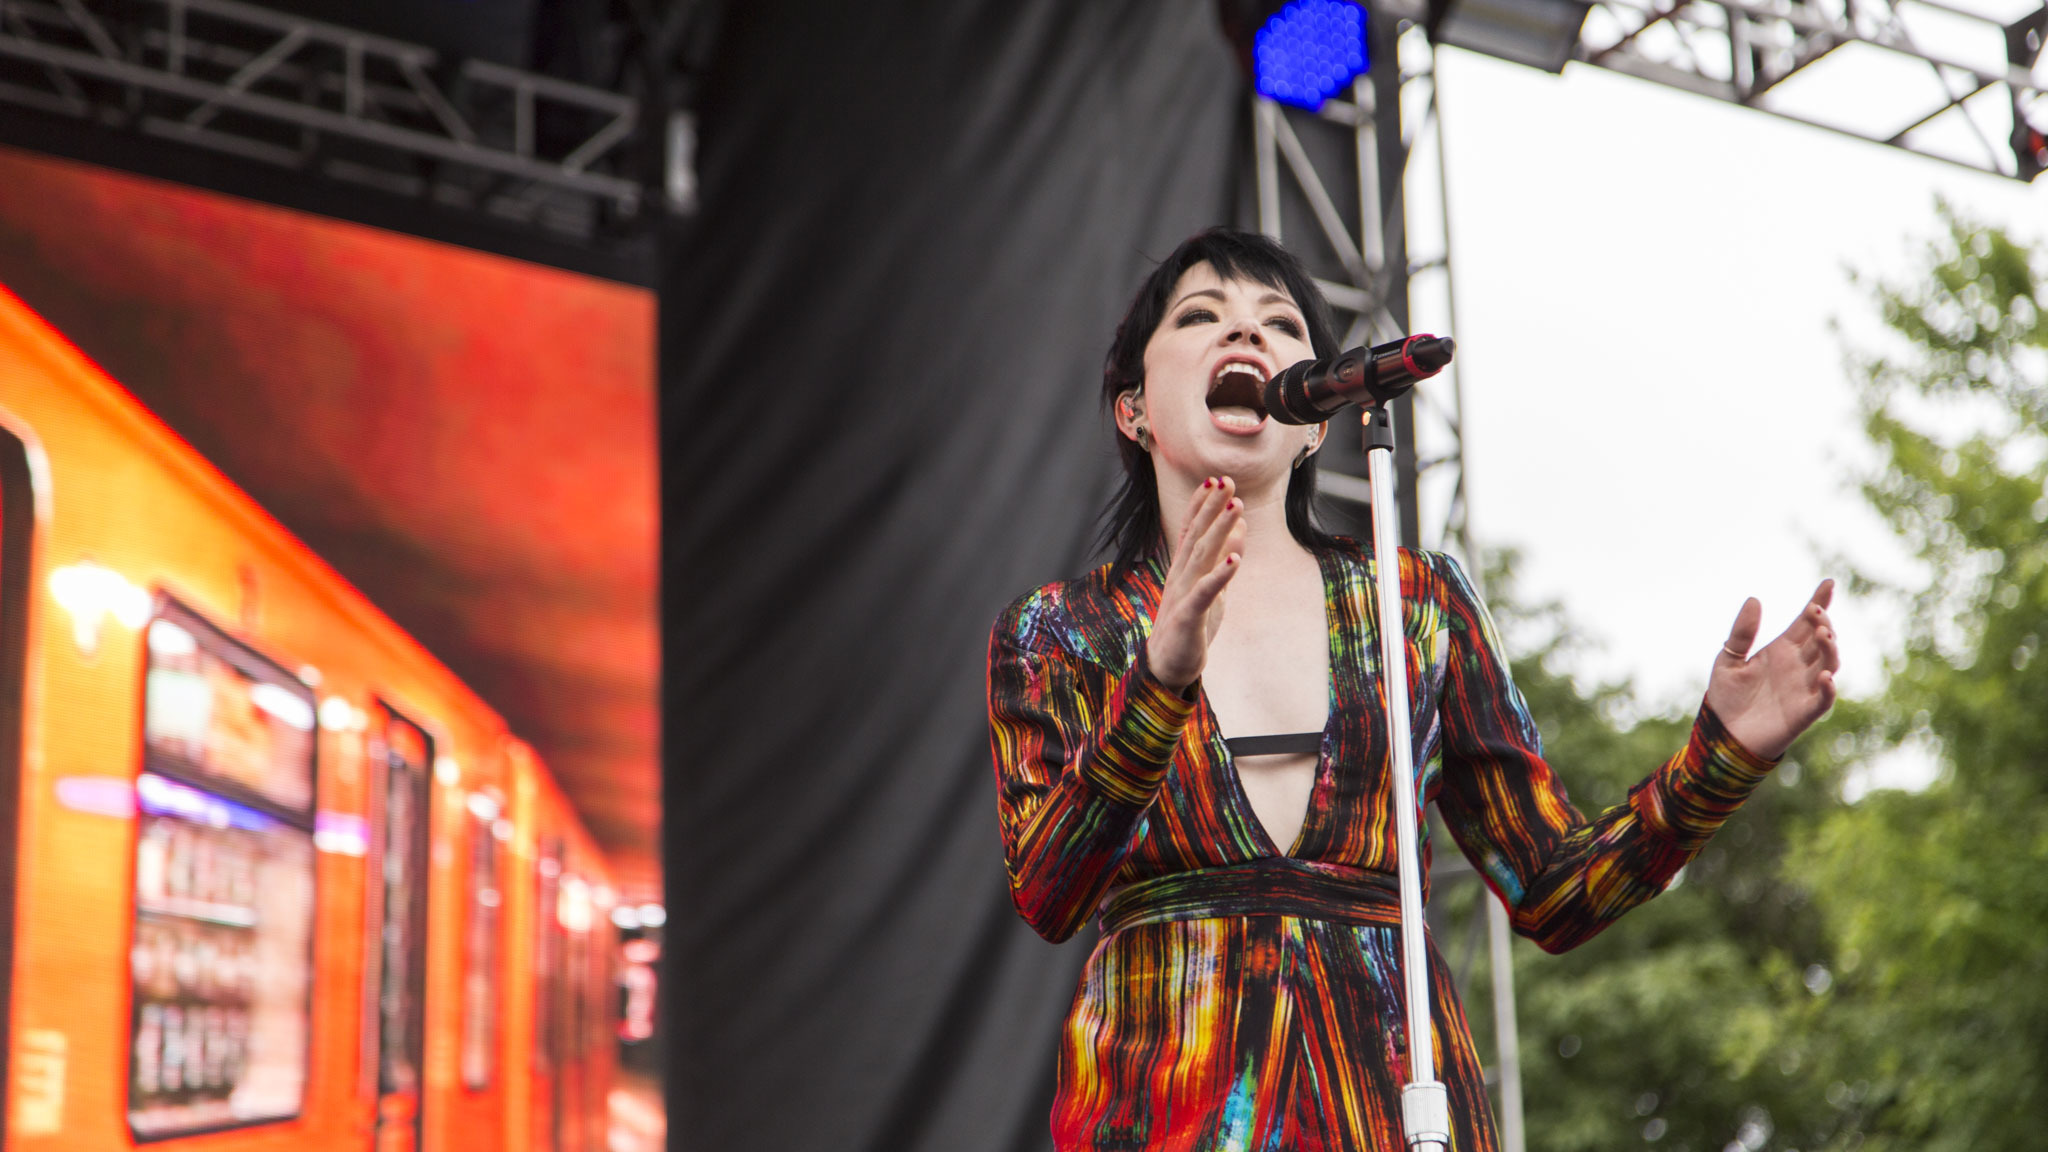 Photos from Pitchfork 2016, Friday